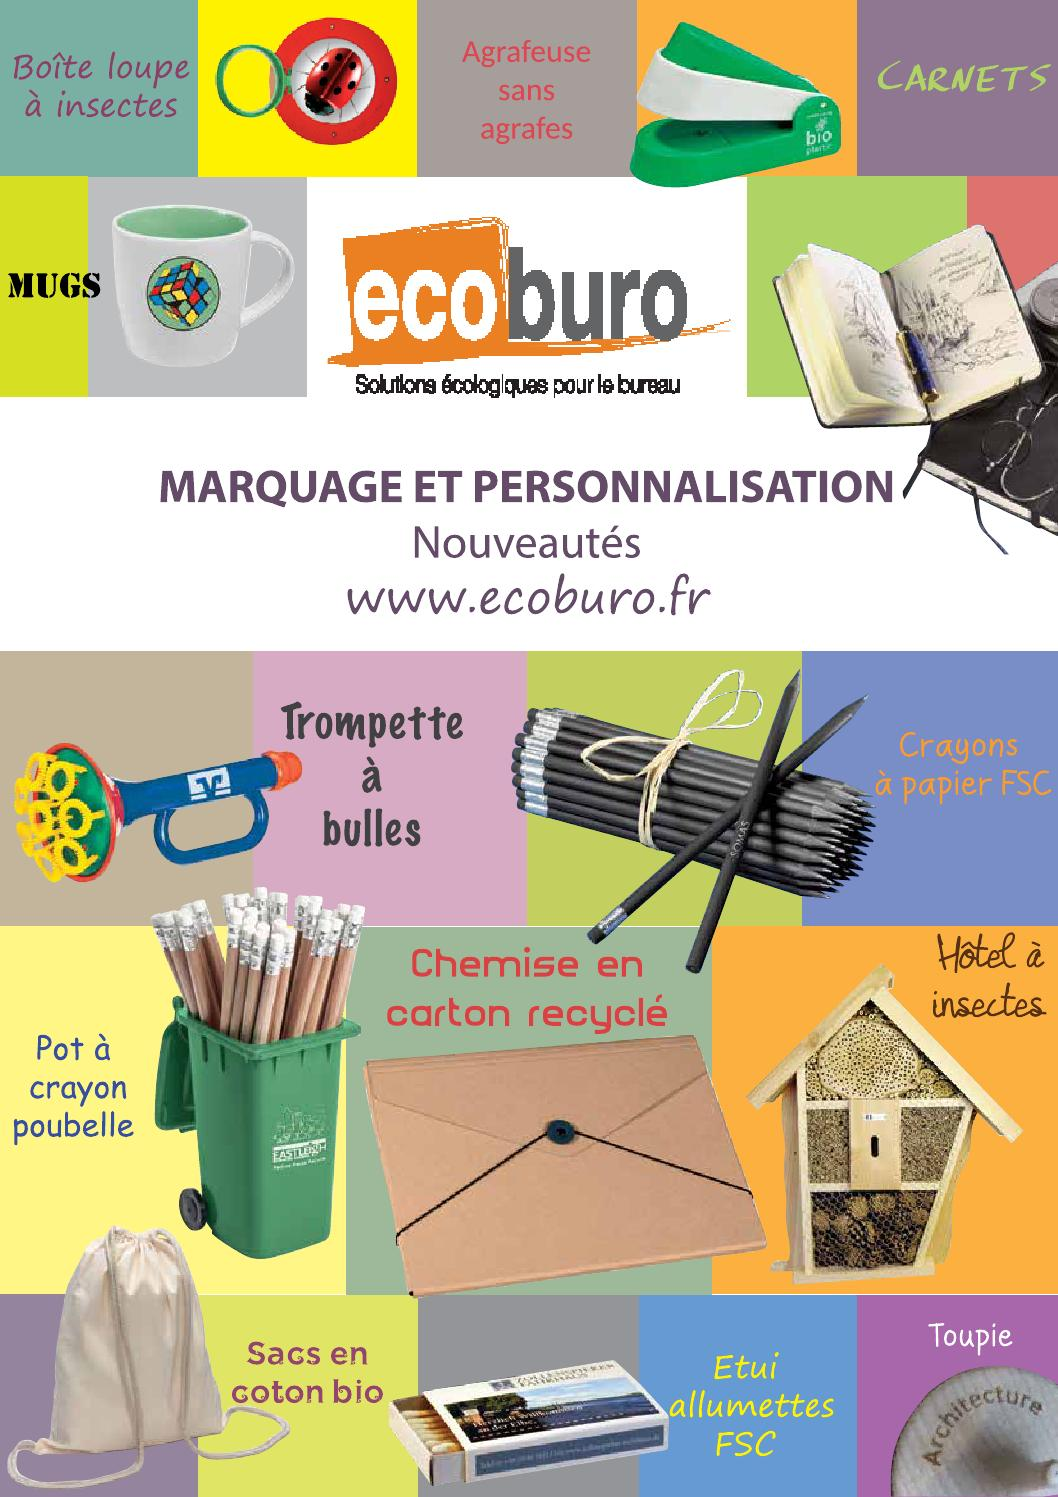 979c205b12f9 Catalogue Ecoburo personnalisations 2014 by Ecodis - issuu